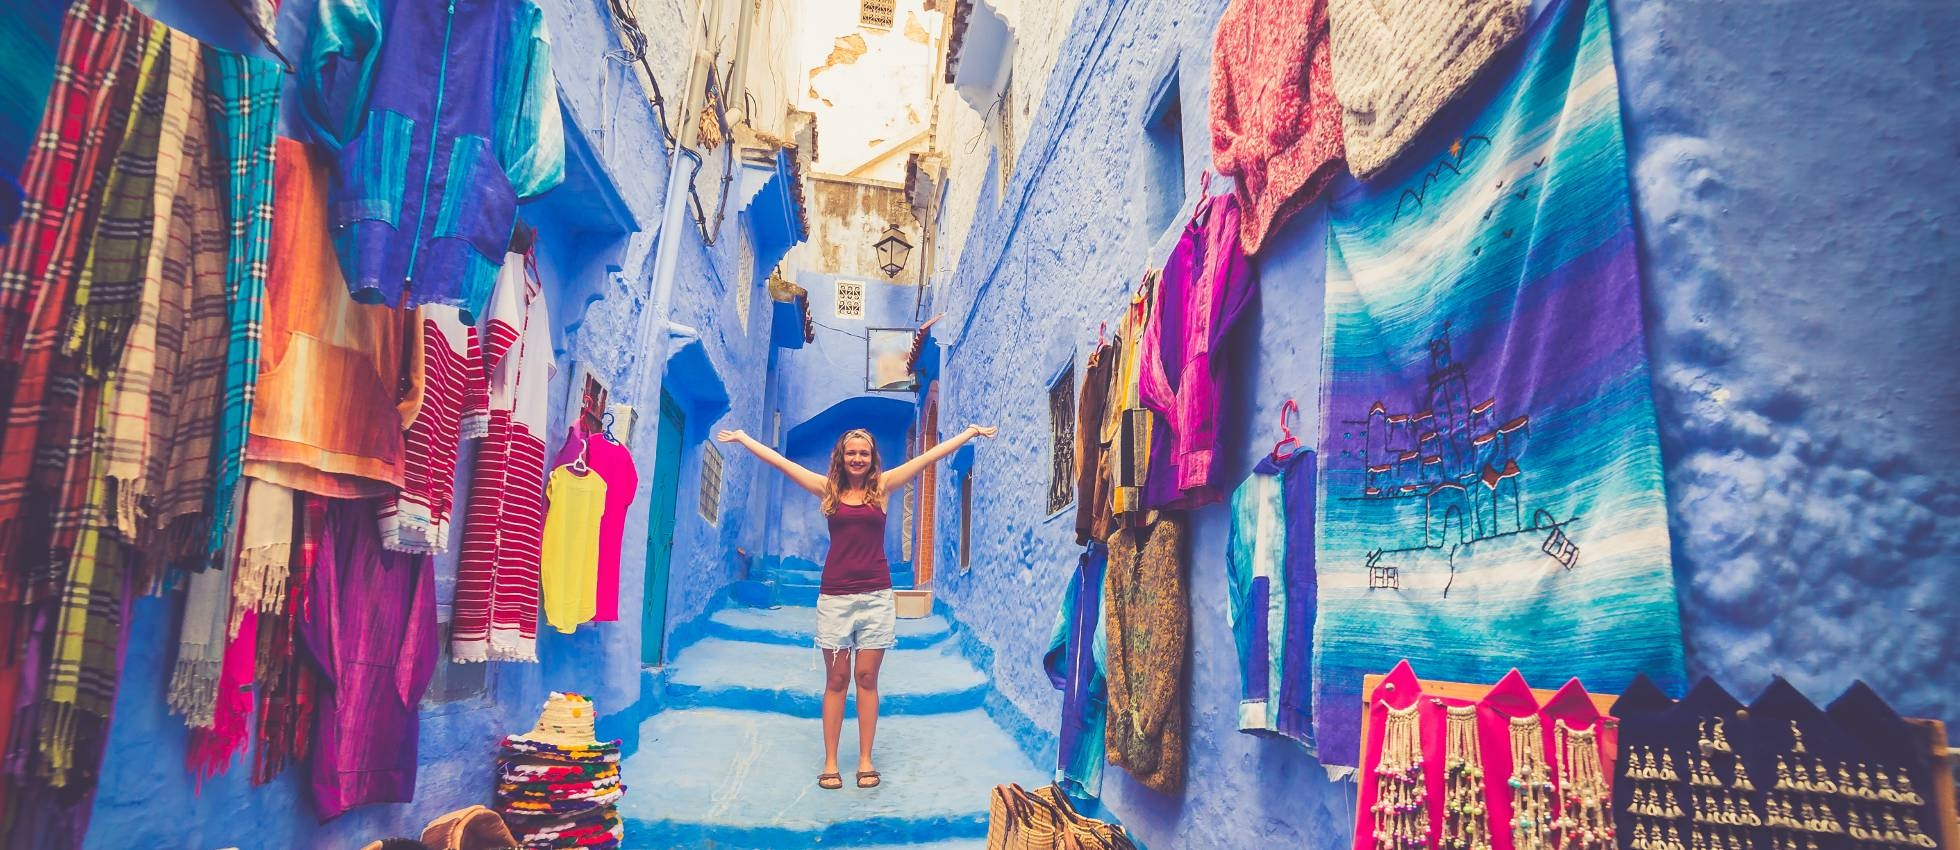 The Streets of Chefchaouen